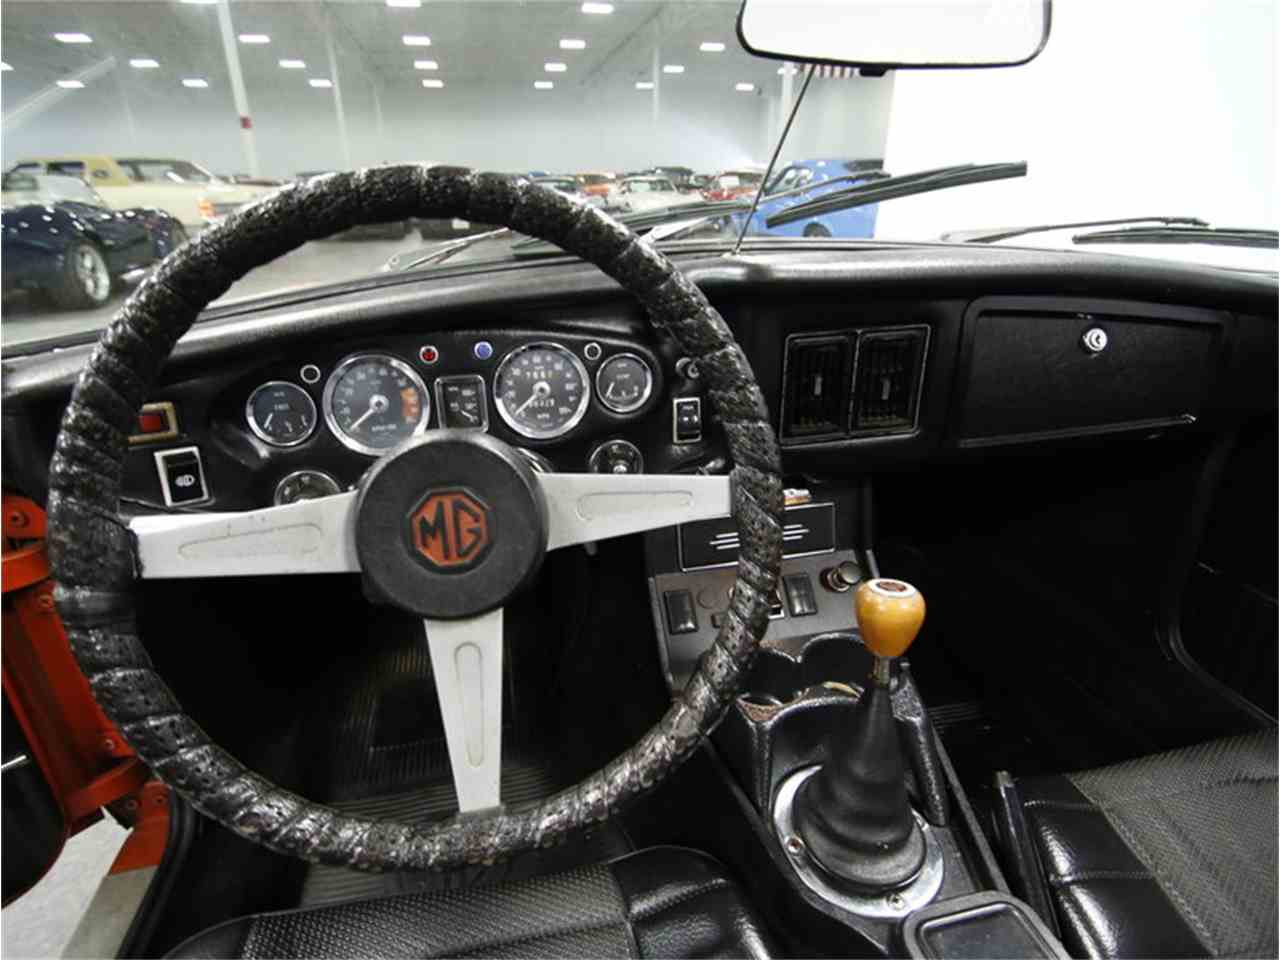 Large Picture of 1974 MG MGB located in Concord North Carolina - $7,995.00 Offered by Streetside Classics - Charlotte - L3R9